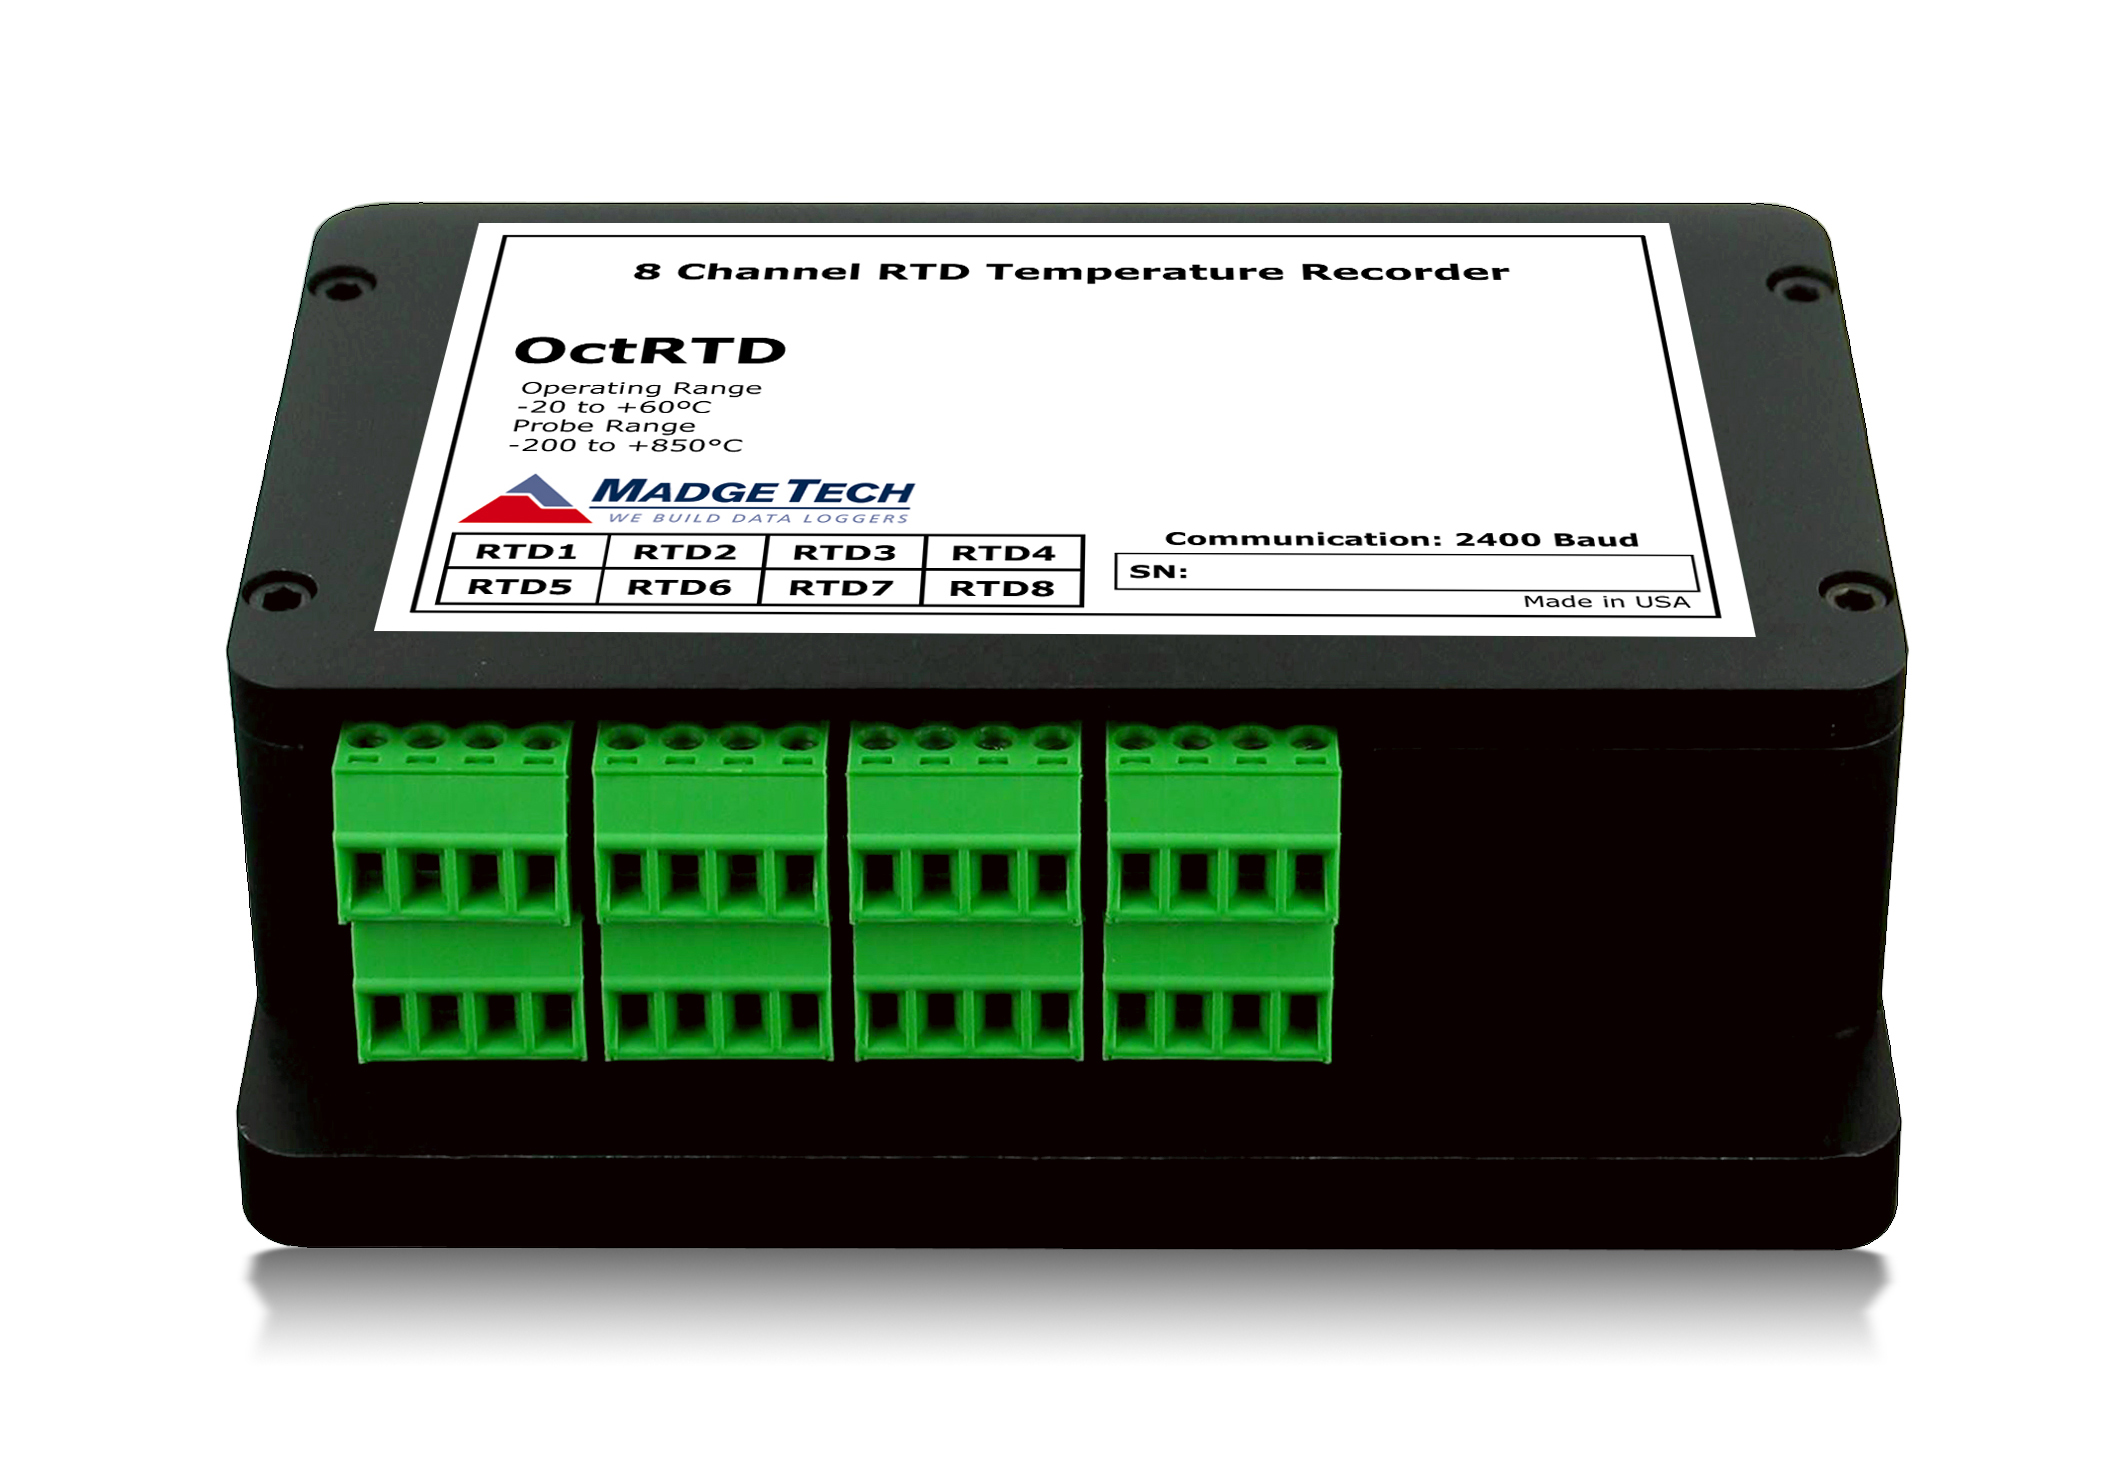 OctRTD precision 8 channel data logger